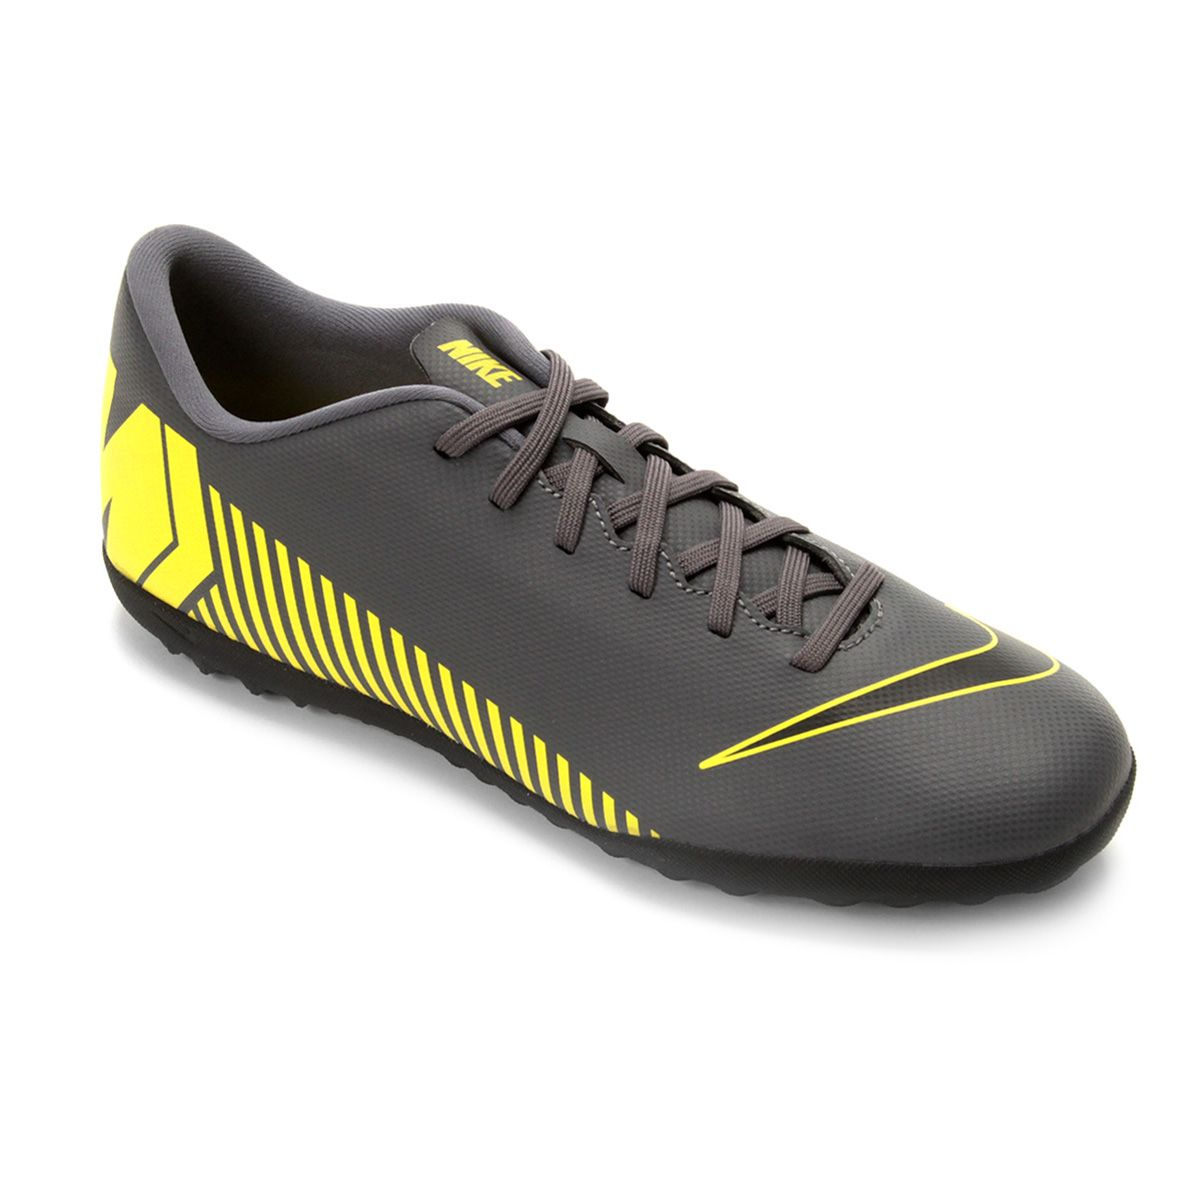 Chuteira Society Nike Vapor 12 Club TF